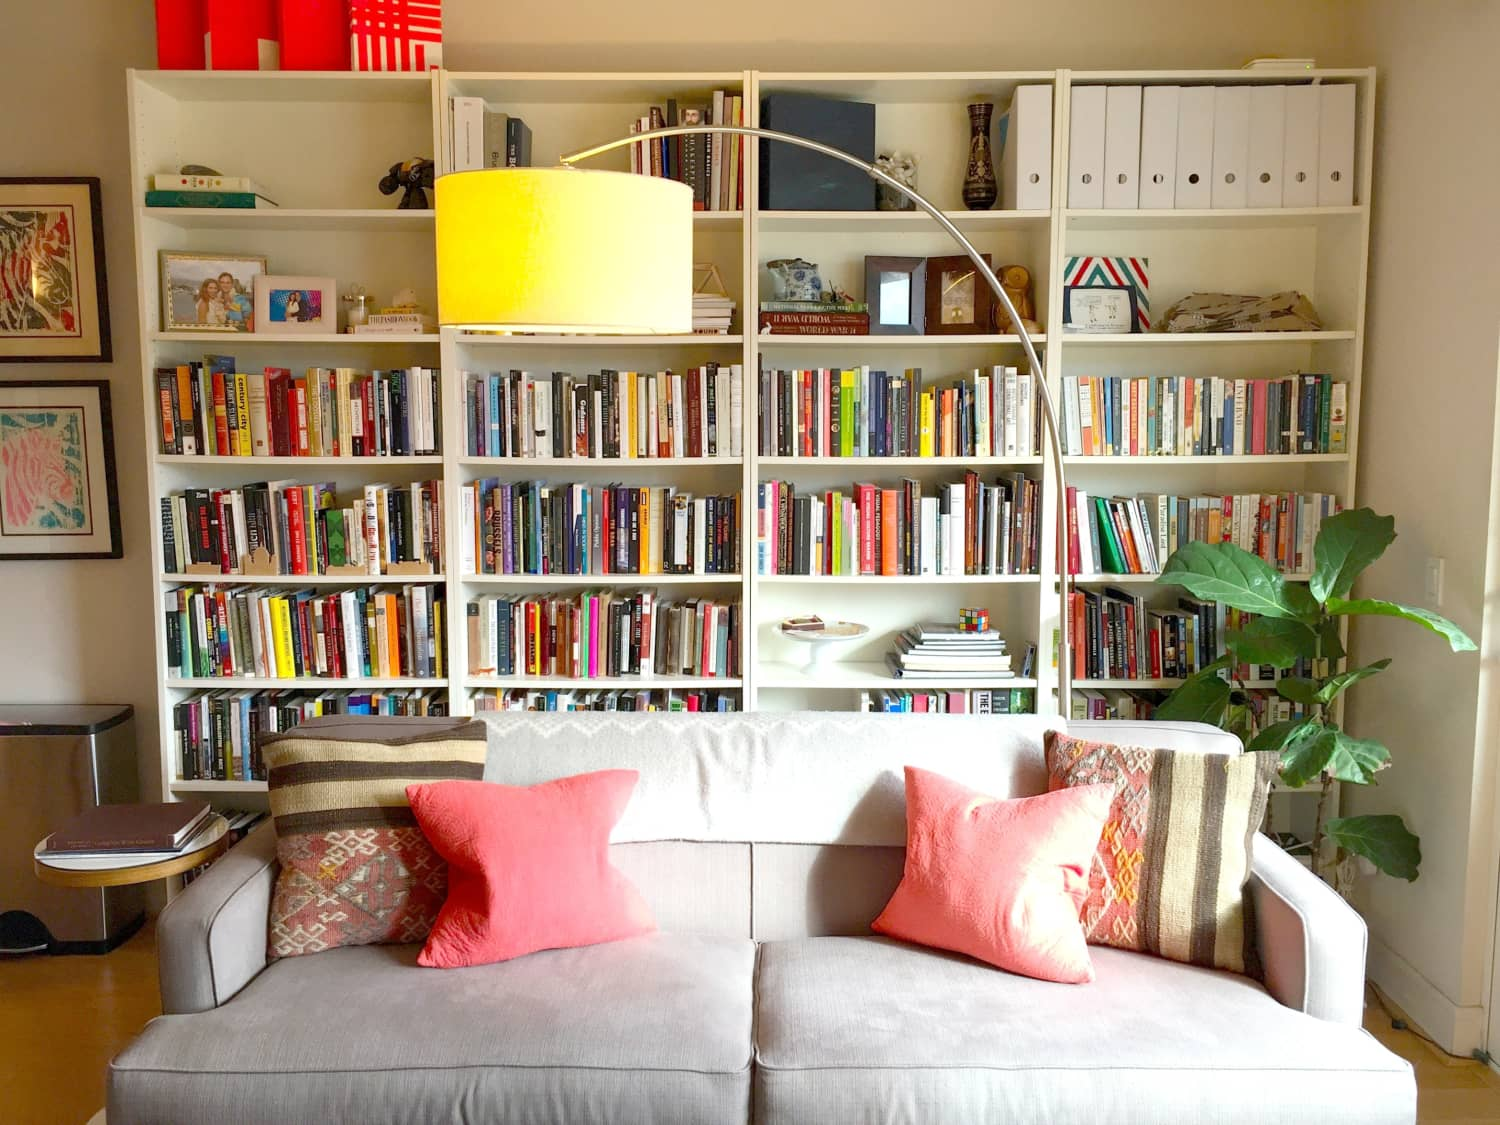 The Best Spot for Small Space Storage May Be Right Behind You